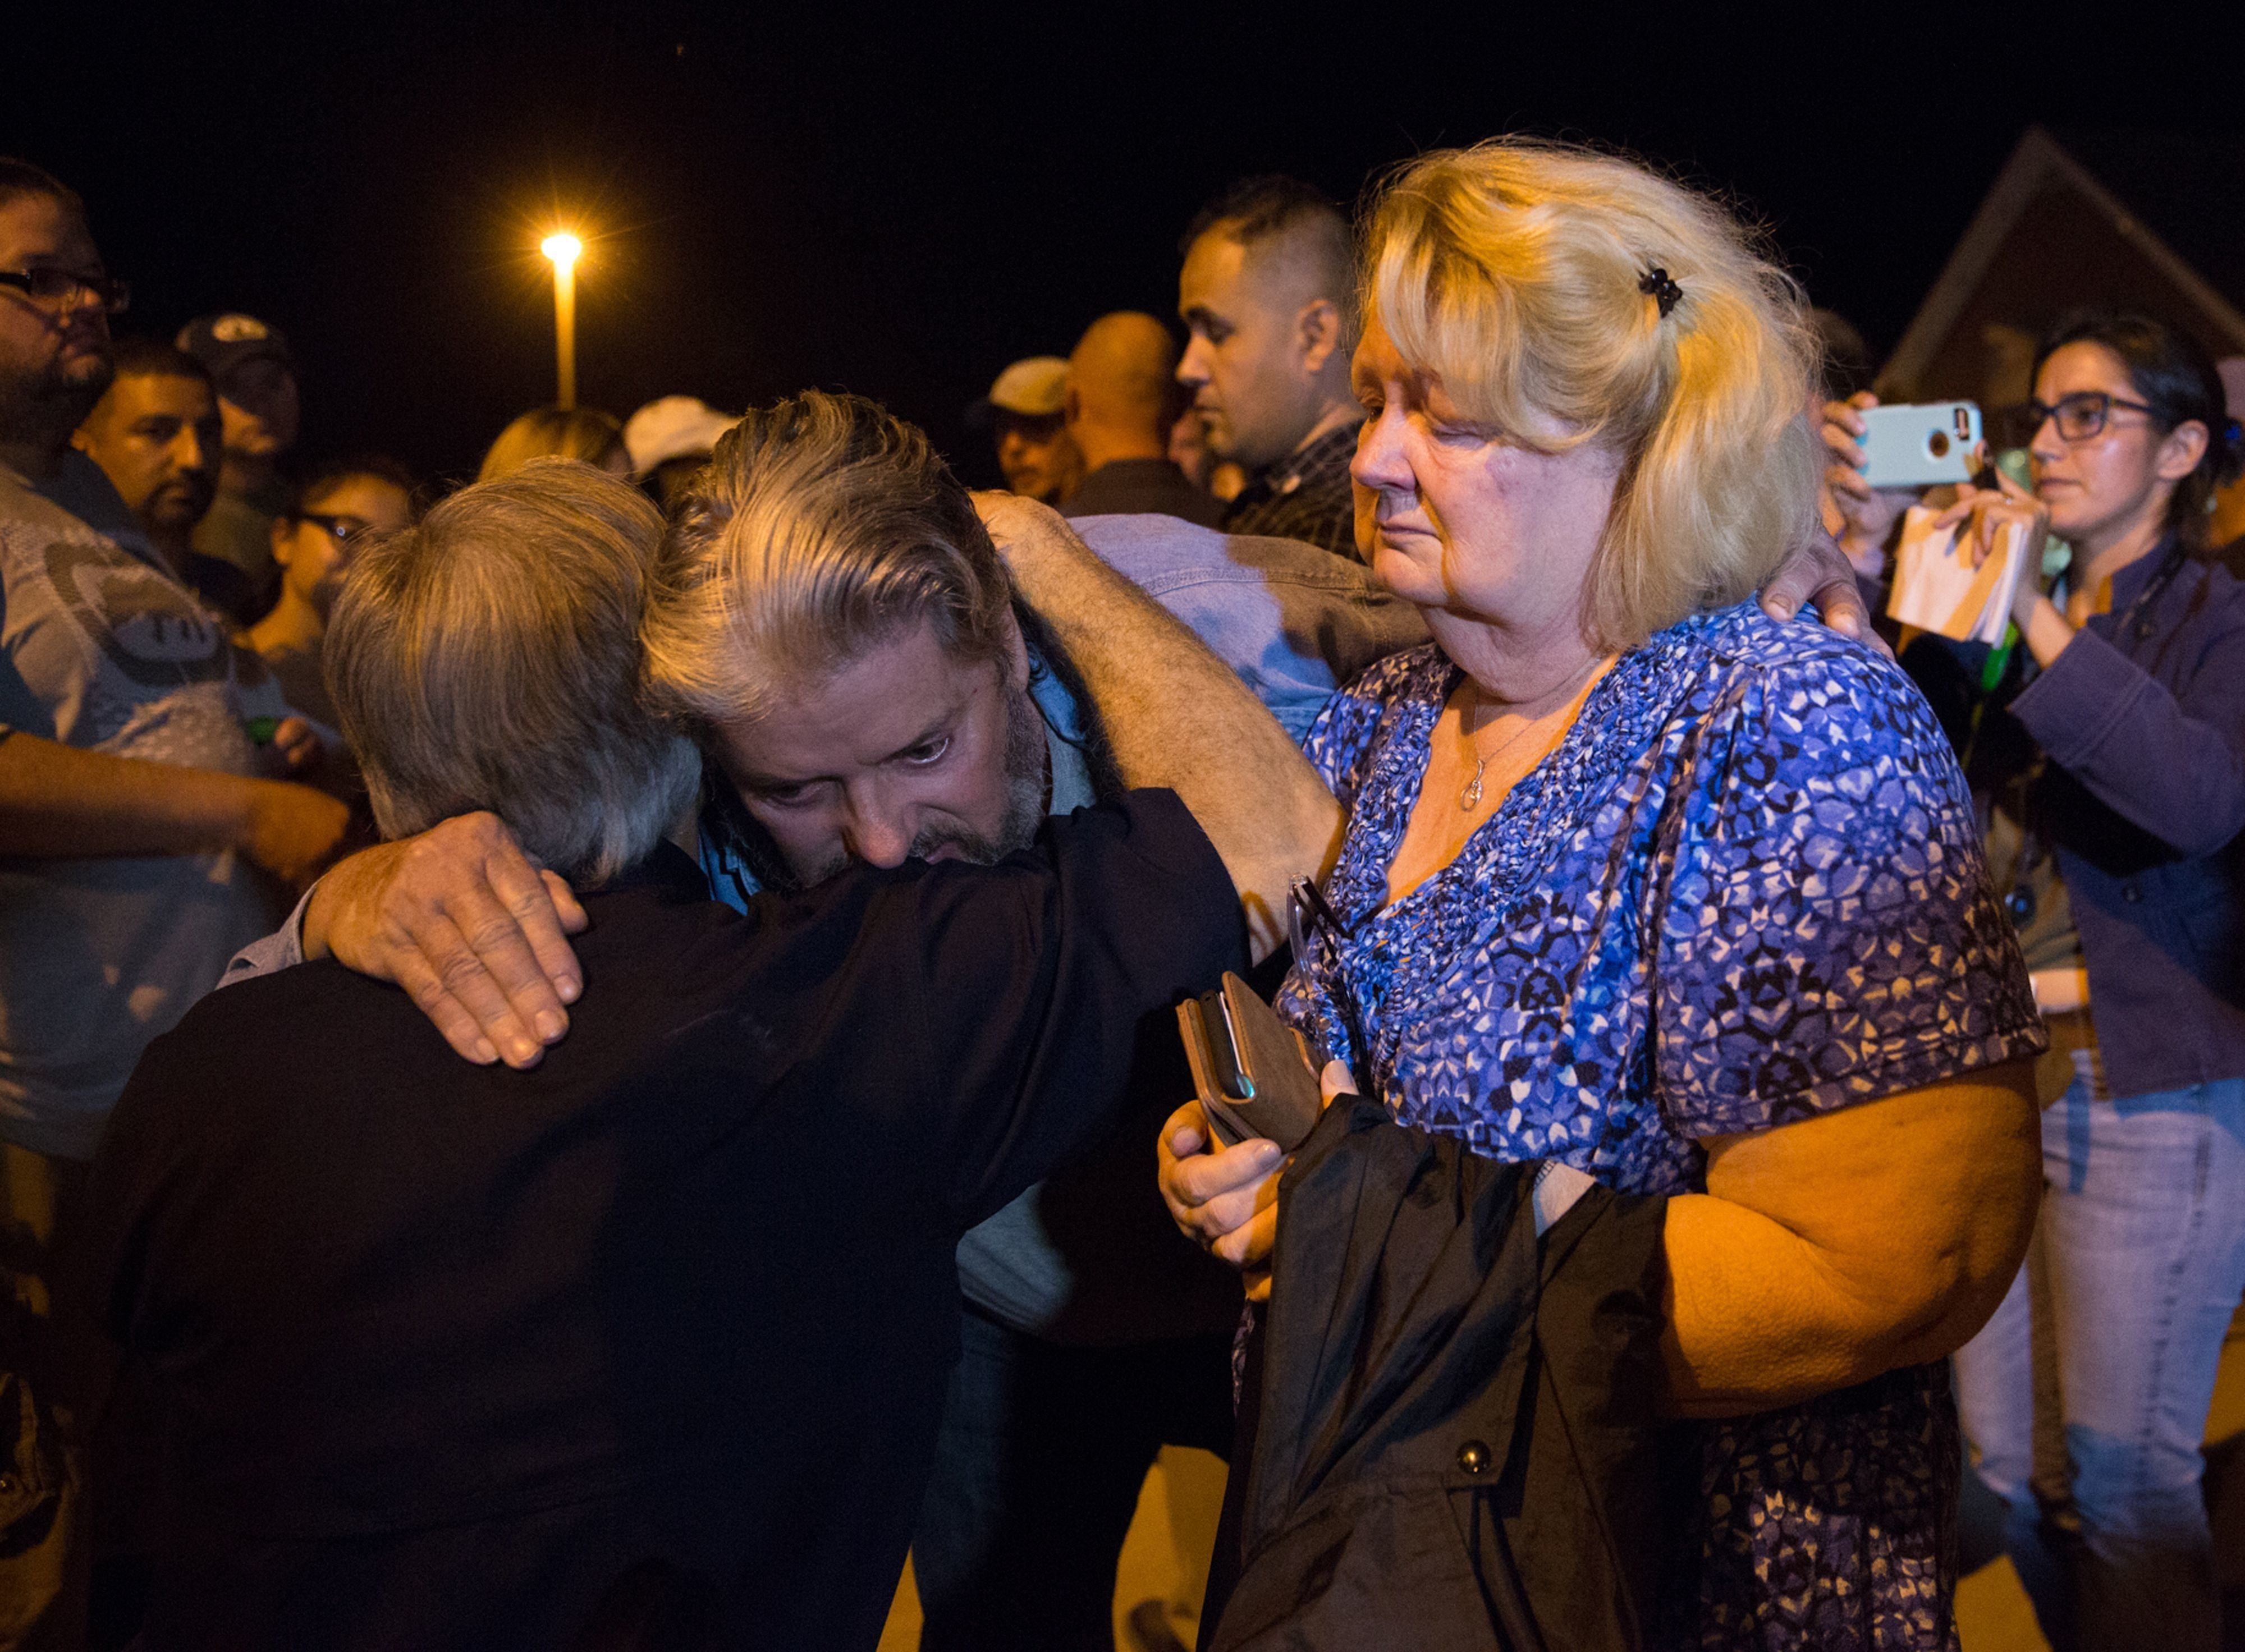 Ted and Ann Montgomery, employees at the First Baptist Church, are comforted by Texas Governor Greg Abbott (L) following a candlelight vigil held across the street from the church on November 5, 2017. 'There are 26 lives that have been lost. We don't know if that number will rise or not, all we know is that's too many, and this will be a long, suffering mourning for those in pain,' Abbott said during a press conference.  / AFP PHOTO / SUZANNE CORDEIRO        (Photo credit should read SUZANNE CORDEIRO/AFP/Getty Images)